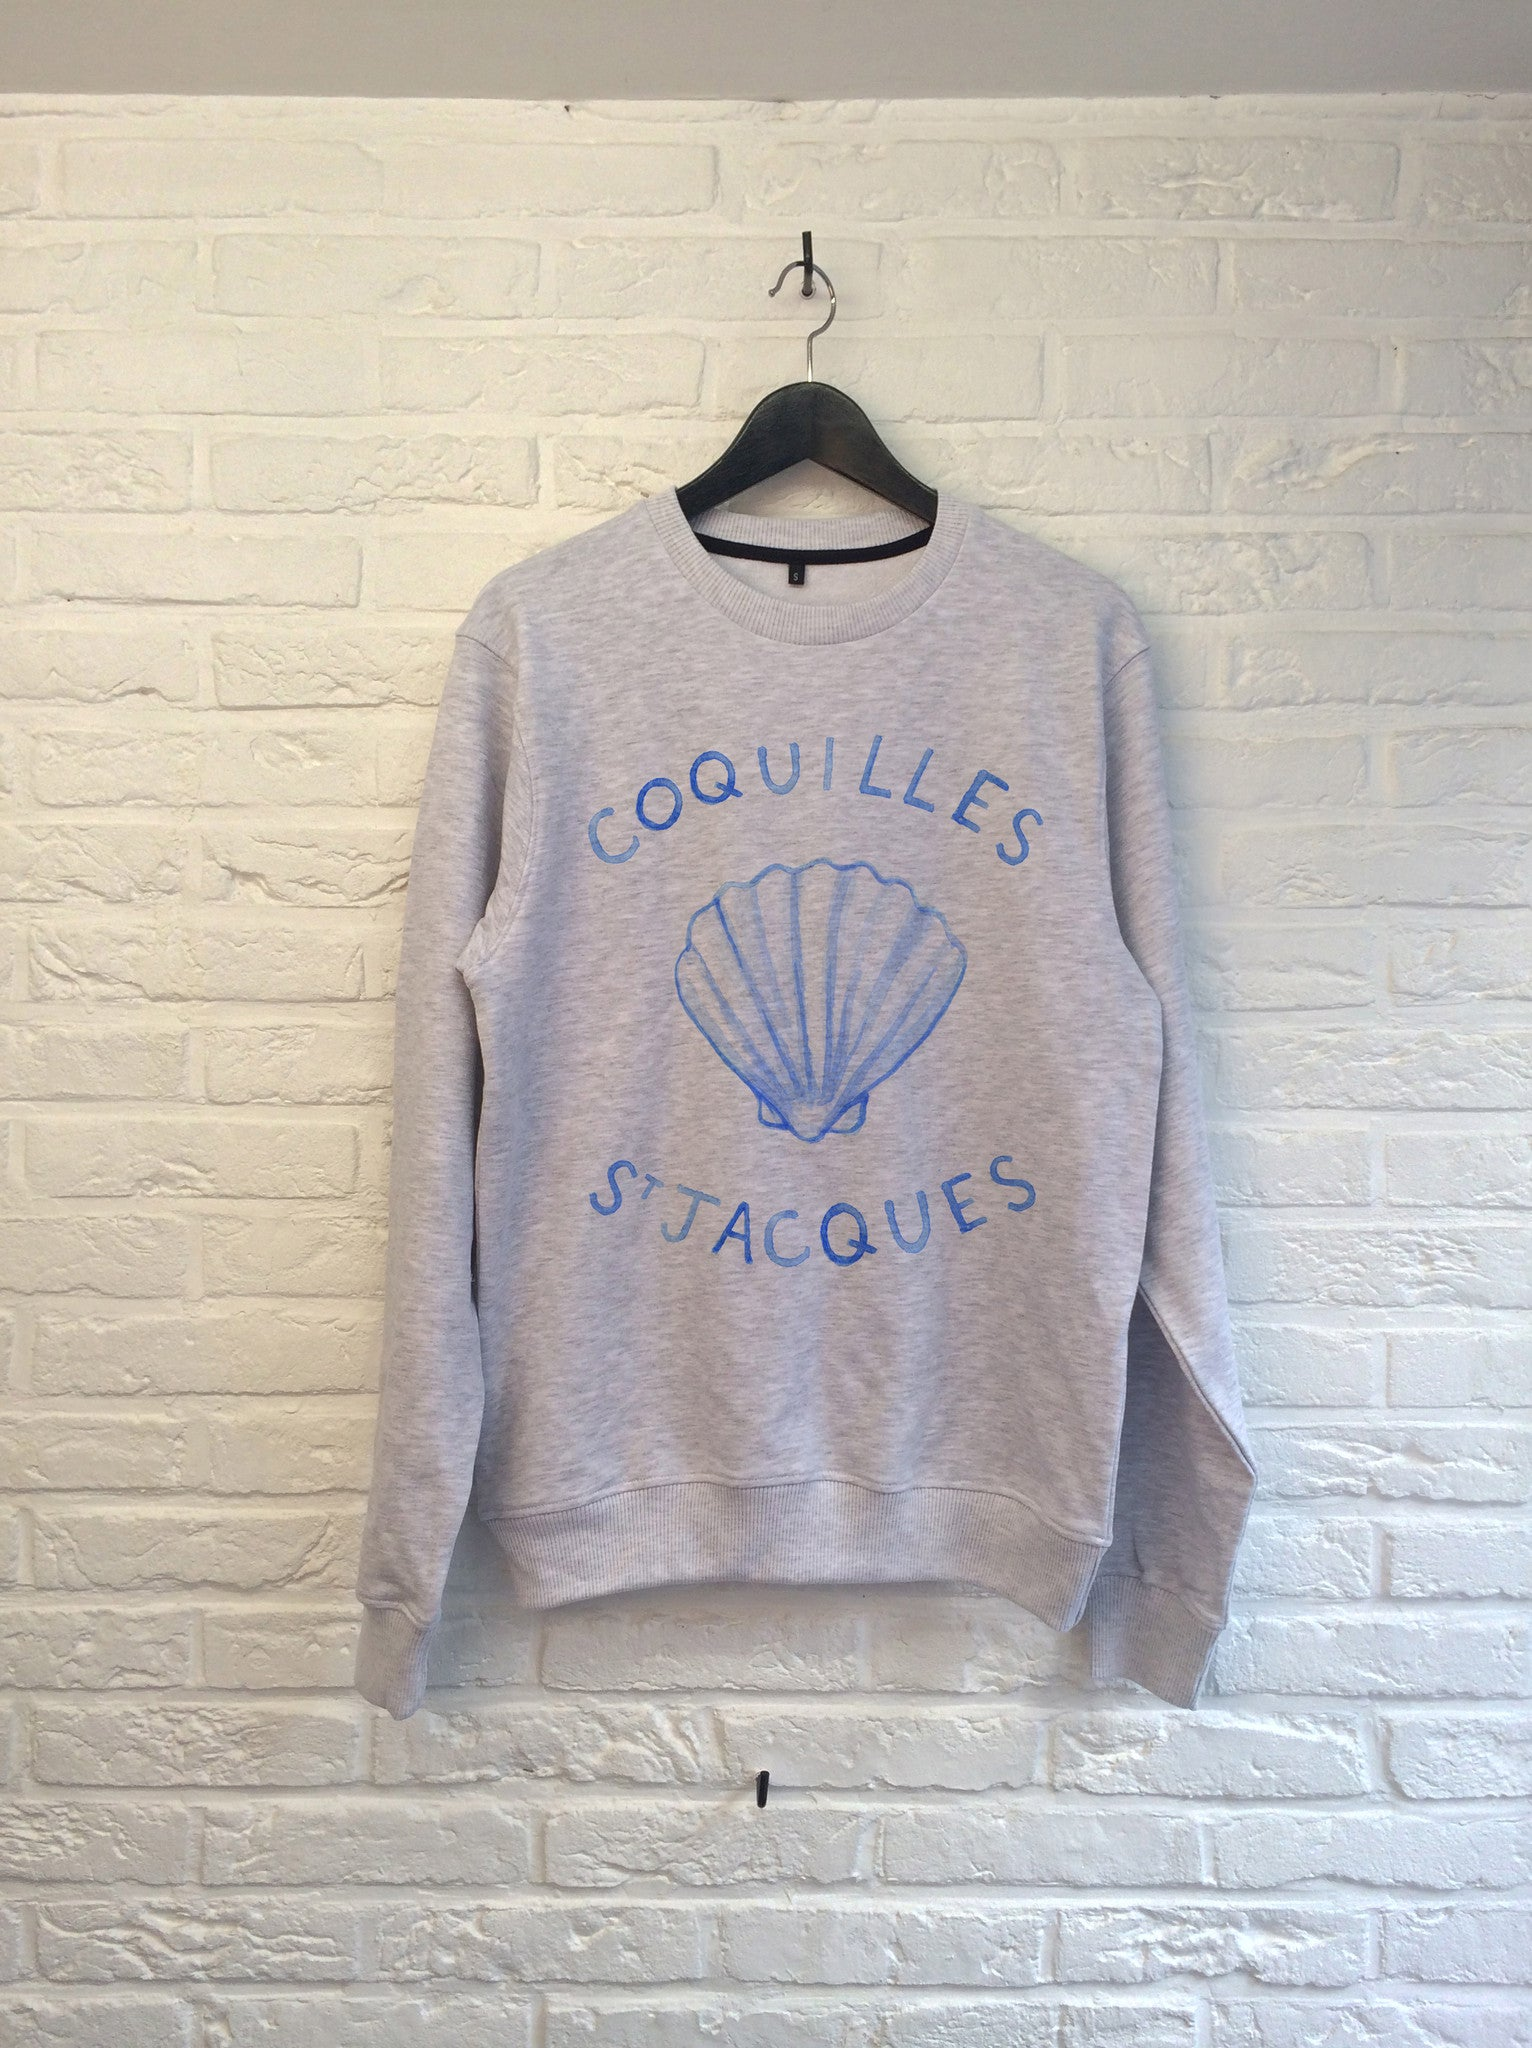 TH Gallery - Coquilles St Jacques - Sweat-Sweat shirts-Atelier Amelot